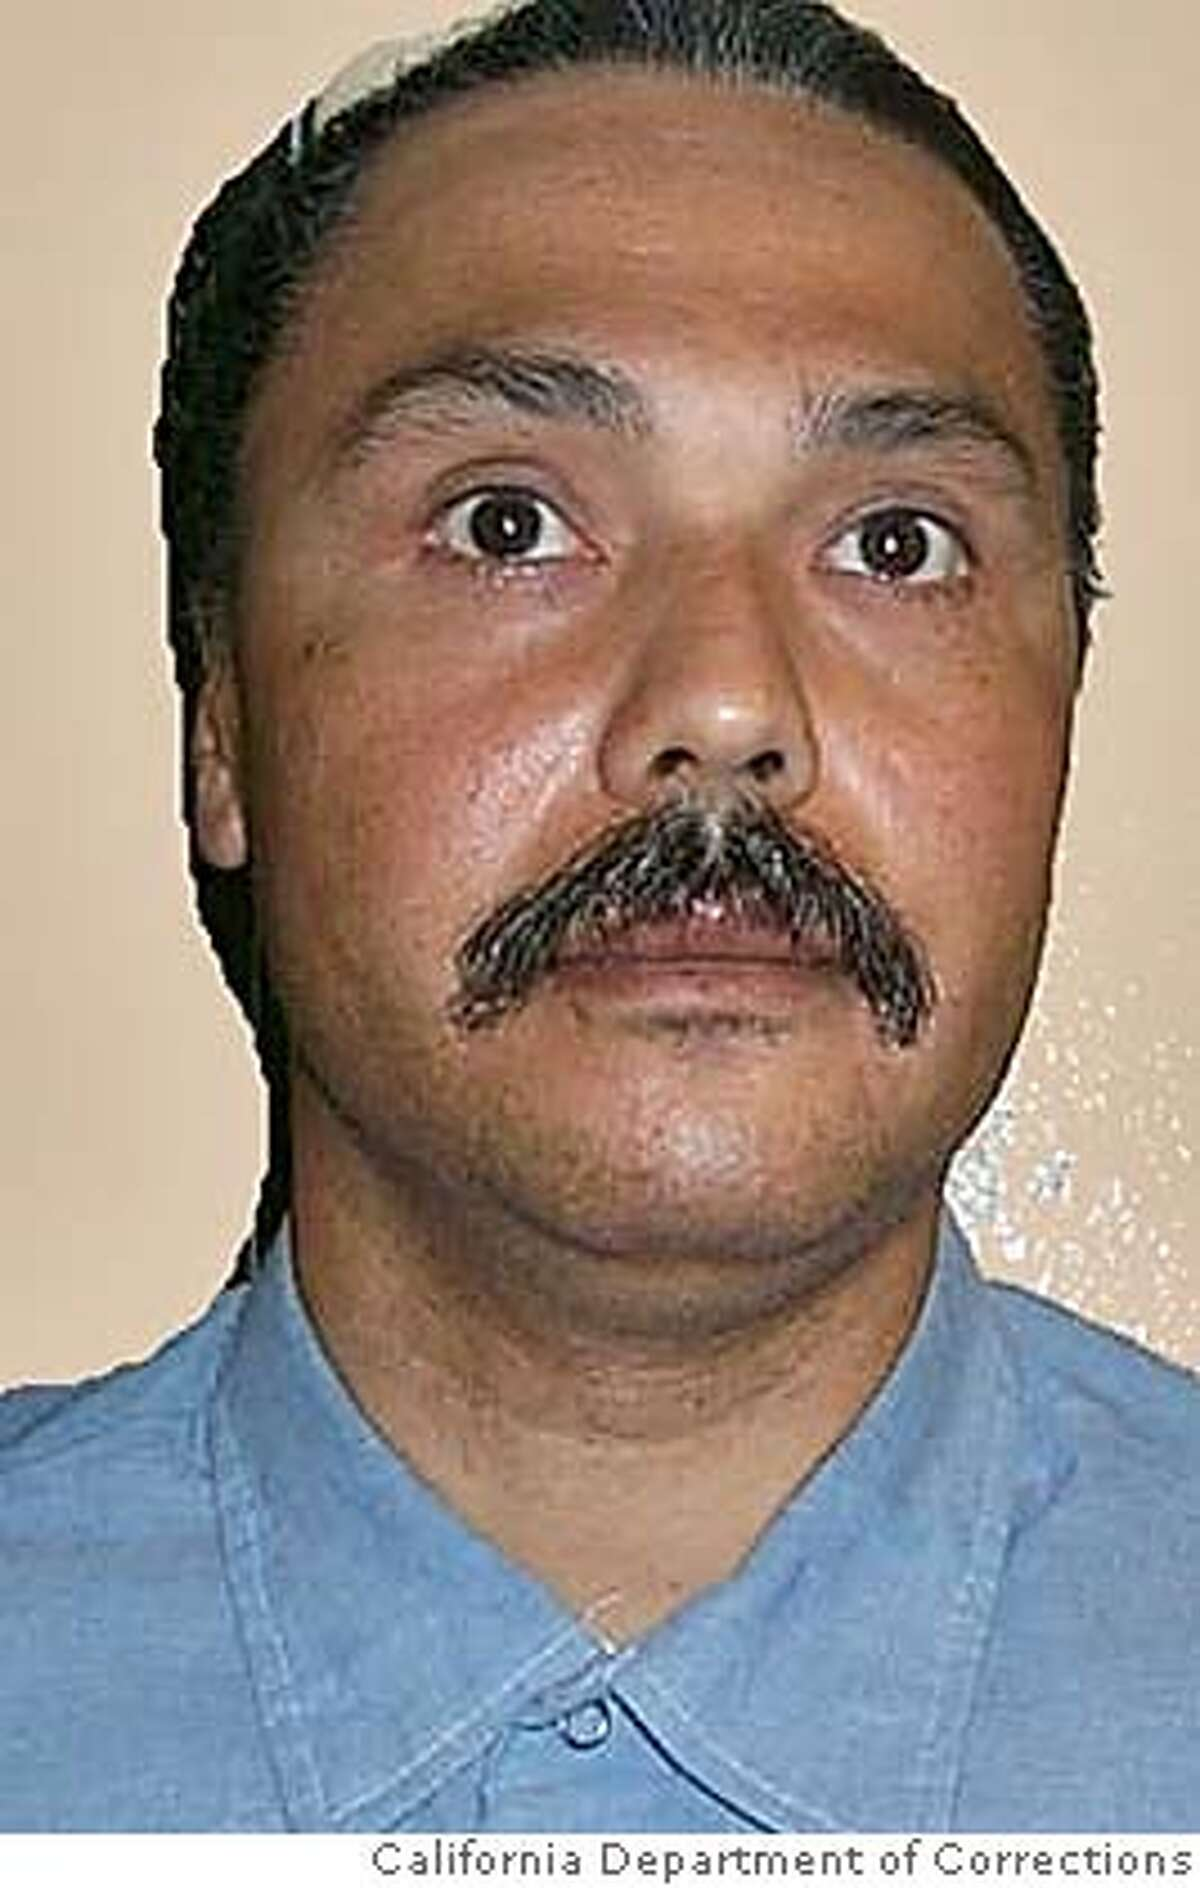 """** EDS: PHOTO HAS BEEN DIGITALLY ALTERED BY SOURCE TO REMOVE BACKGROUND ** In this photo released by the California Department of Corrections, Michael Morales, 46, of Stockton, Calif., is seen in an undated photo. Morales was convicted in 1983 of murdering 17-year-old Terri Winchell, who was found beaten and stabbed in a secluded vineyard. Lawyers for Morales who is scheduled to be lethally injected Tuesday, Feb. 21, 2006, are objecting to a court-ordered plan to alter the procedure, saying Thursday the revision reduces the condemned man """"to little more than a test subject."""" (AP Photo/California Department of Corrections)Ran on: 02-18-2006 Michael Morales may have changed during his years in prison, but that doesnt outweigh the brutality of his crimes, the governor said.Ran on: 02-18-2006 Ran on: 02-18-2006 Michael Morales may have changed during his years in prison, but that doesnt outweigh the brutality of his crimes, the governor said.Ran on: 02-18-2006 PHOTO RELEASED BY THE CALIFORNIA DEPARTMENT OF CORRECTIONS. UNDATED PHOTO. EDS: PHOTO HAS BEEN DIGITALLY ALTERED BY SOURCE TO REMOVE BACKGROUND."""